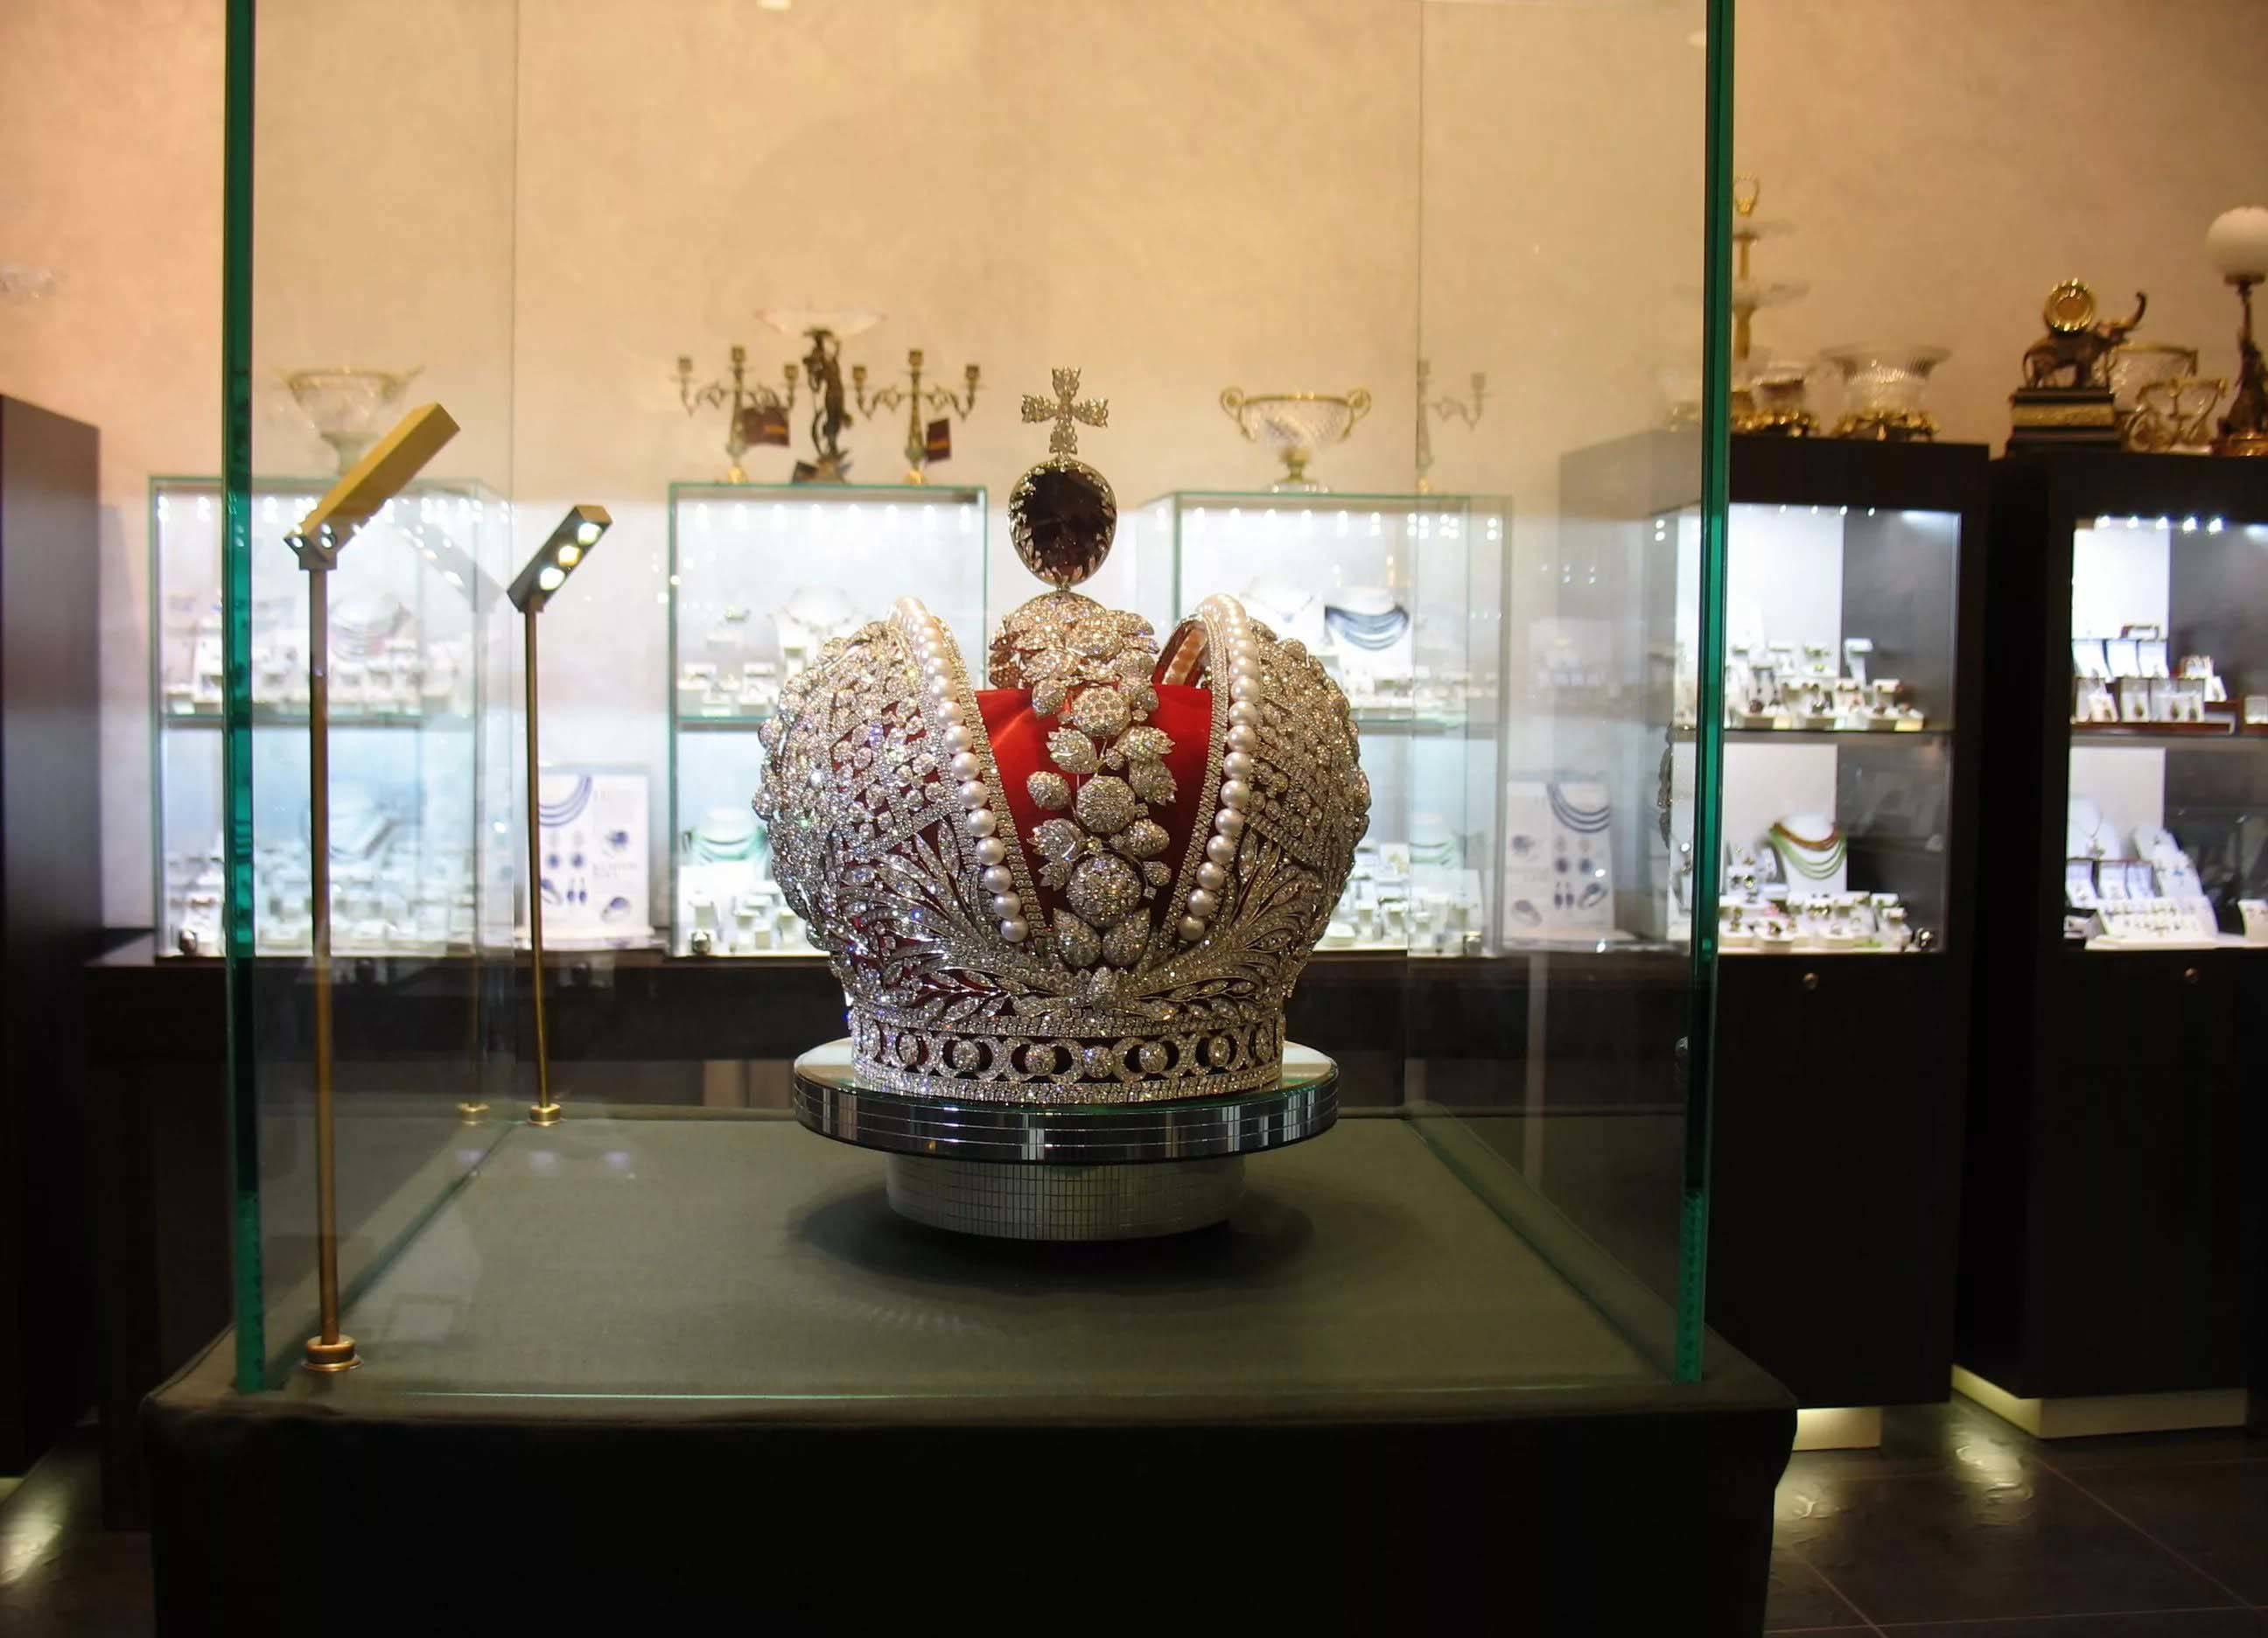 One of Moscow's most celebrated museums, the Diamond Fund